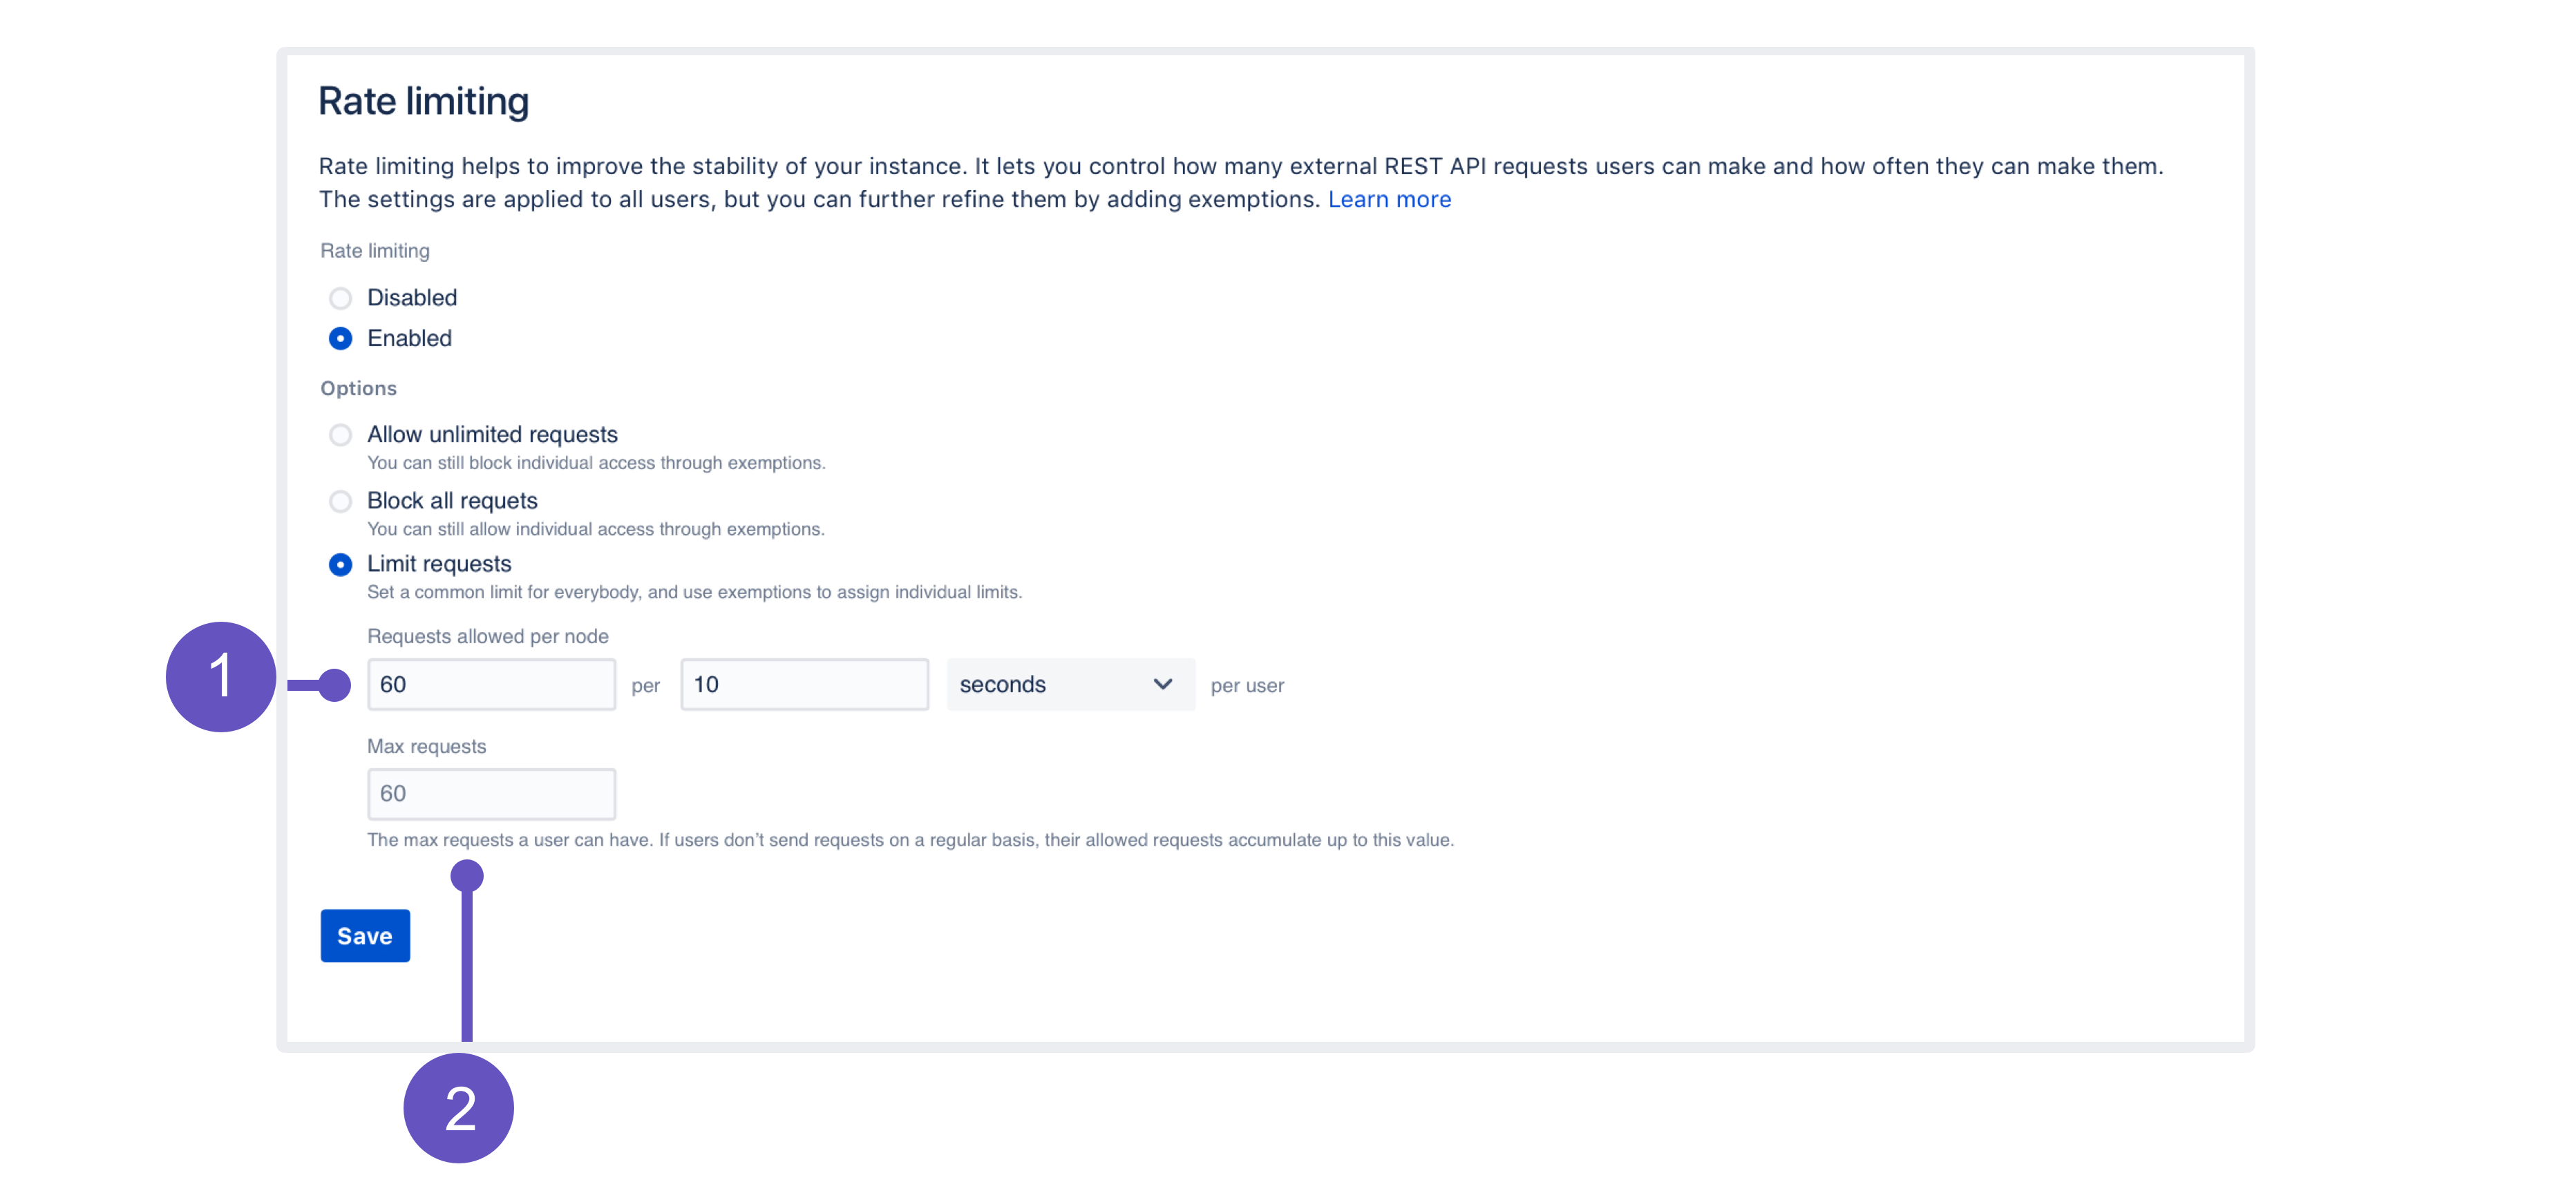 Rate limiting page in the Jira admin console, with annotations explained below the image.